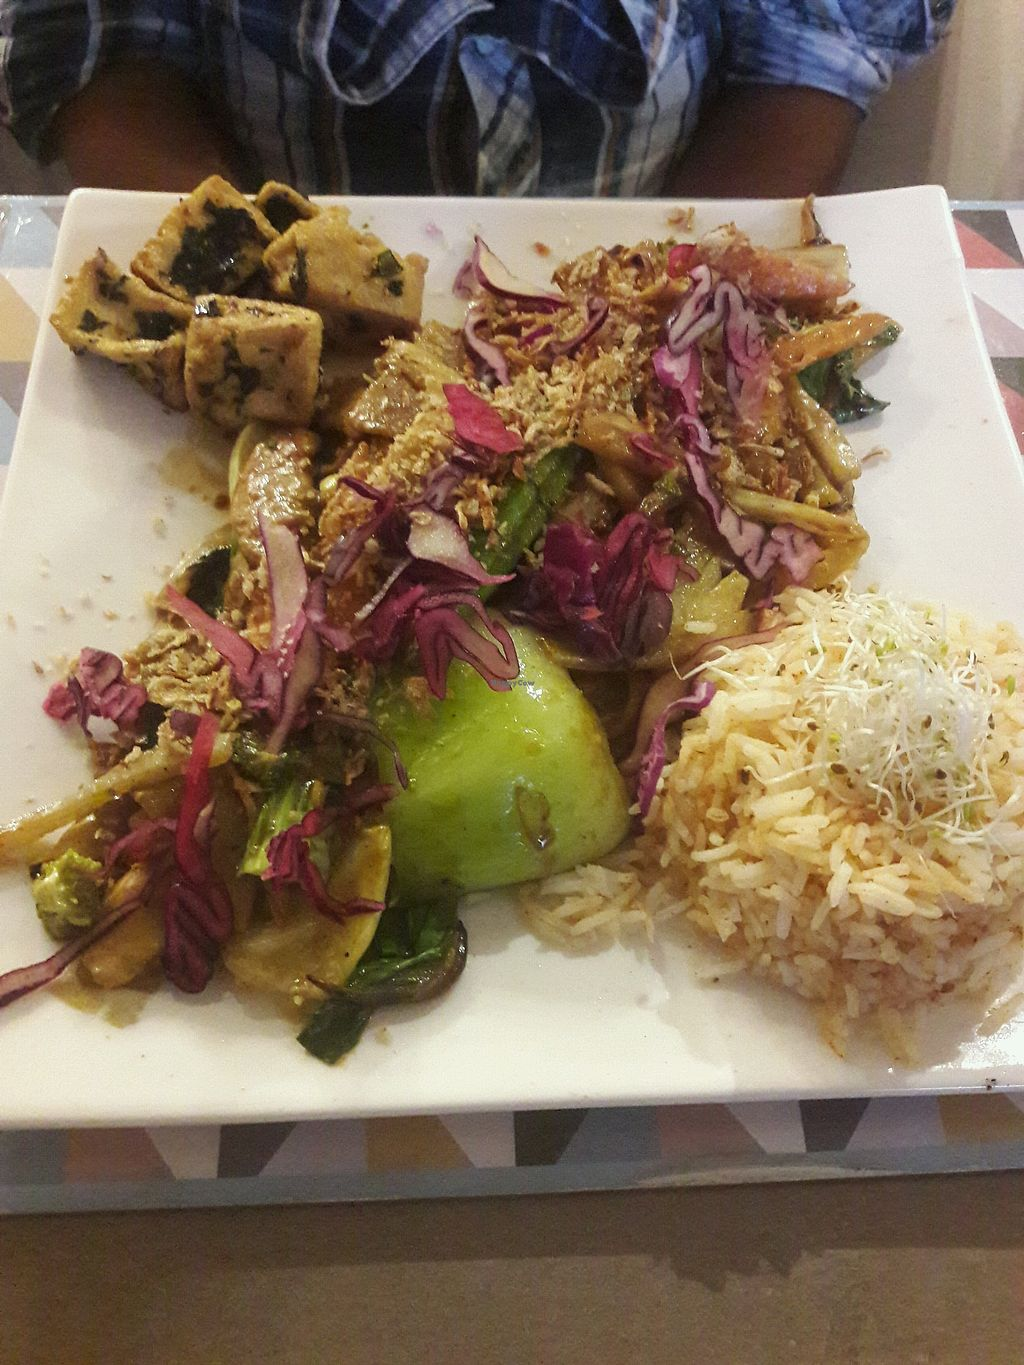 """Photo of L'Eden Sans Gluten  by <a href=""""/members/profile/SportifVegan"""">SportifVegan</a> <br/>wok  <br/> May 14, 2018  - <a href='/contact/abuse/image/76725/399679'>Report</a>"""